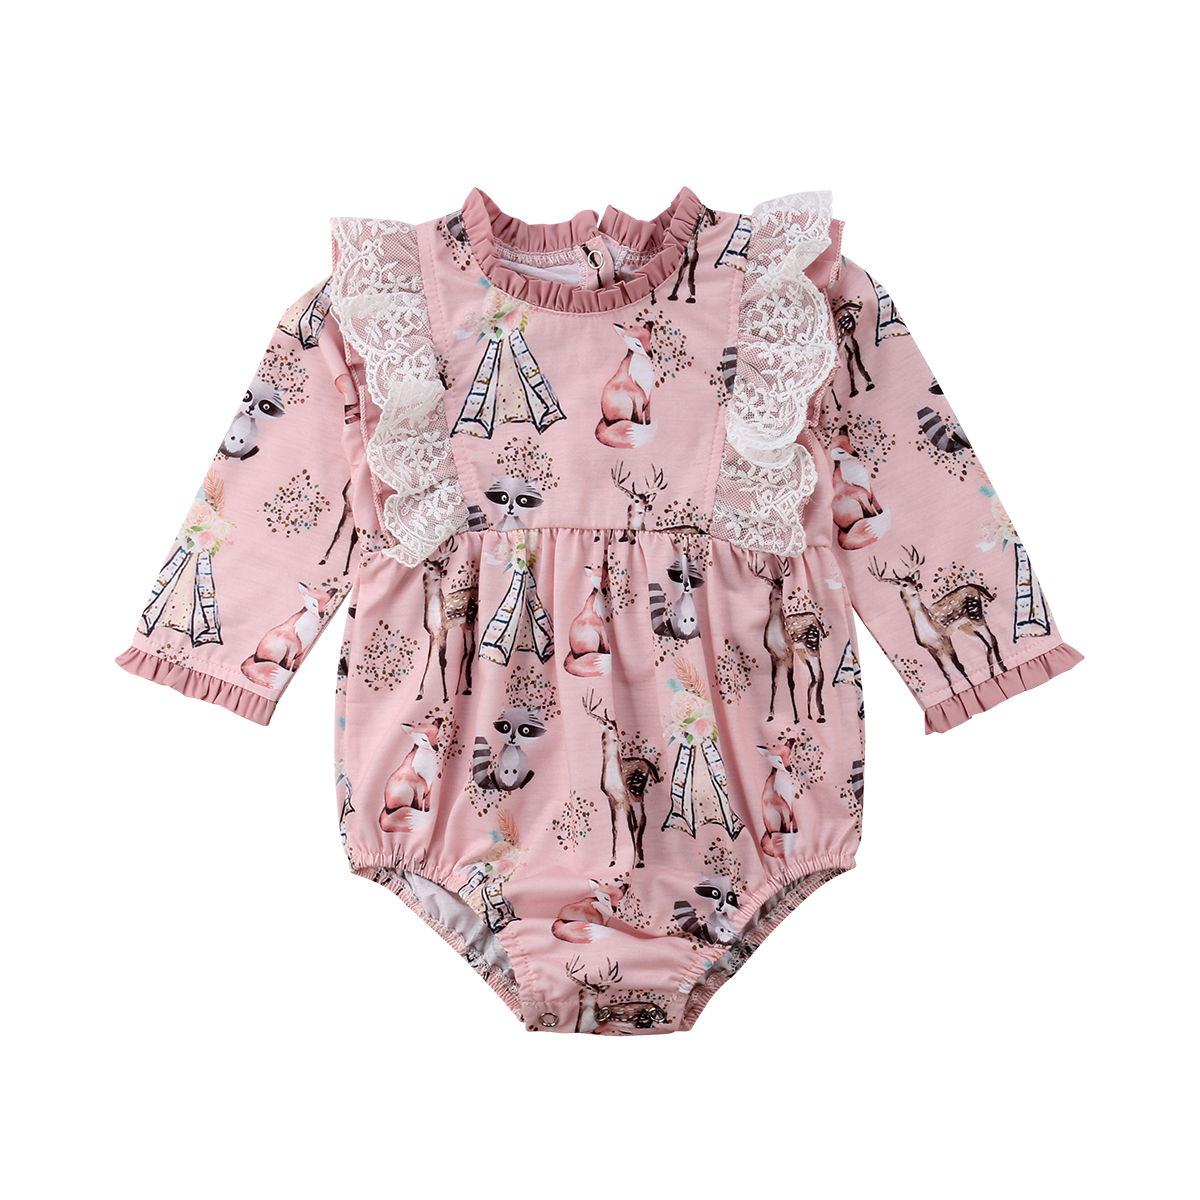 Newborn Baby Girls Long Sleeve Romper Jumpsuit Floral Clothes Outfits poudcoco 2018 Autumn style Baby kids Girl romper baby girls butterfly long sleeve romper newborn kids 2017 new arrival button jumpsuit outfits clothing for newborns age 3m 3y